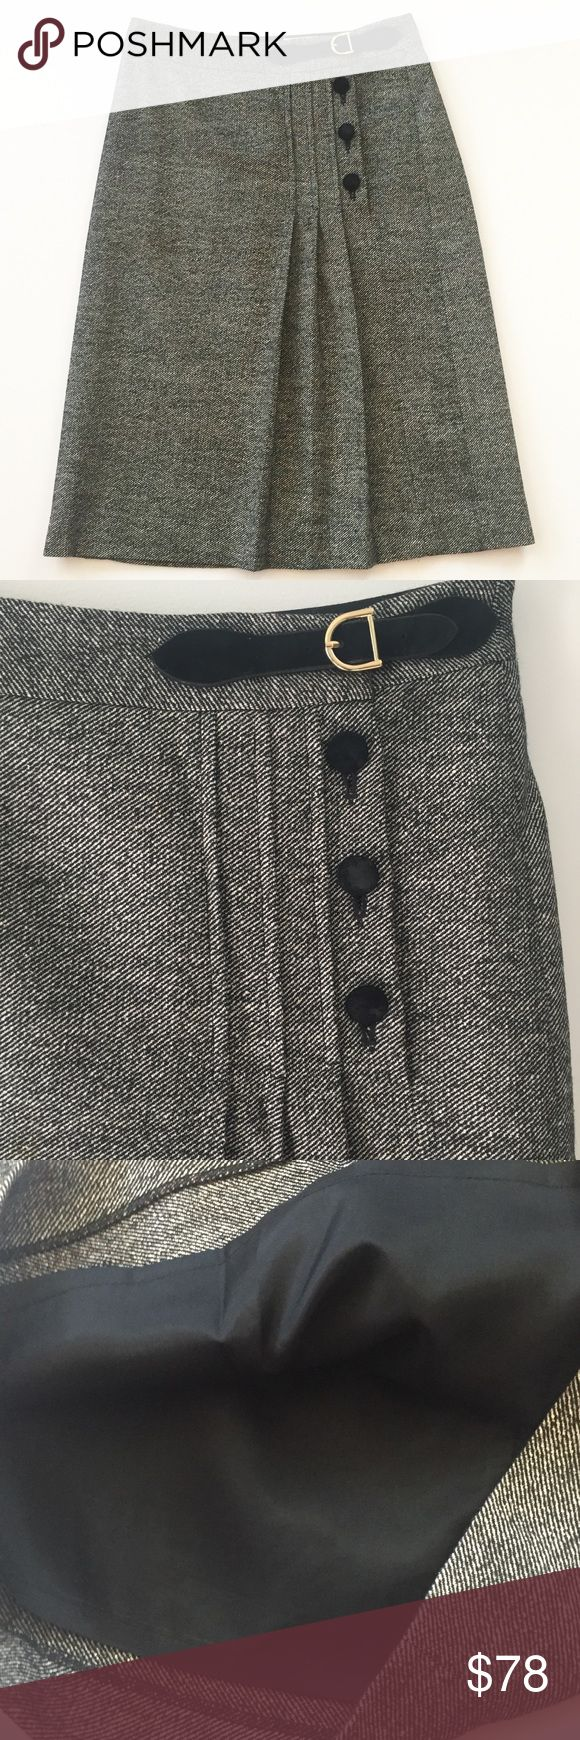 Milly of New York Silk + Wool Tweed Skirt Sz 2 Milly of New York Silk + Wool Tweed Skirt Sz 2 🛍 Excellent condition. 2nd + 3rd buttons have slight wear, please see last photo.   * Shell/Exterior: 46% Wool, 27% Silk, 1% Lycra * Combo: 100% Silk * Combo Trim: 100% Suede  * Lining: 100% Acetate * Made in USA of imported fabric from Spain  * Left front buckle with gold colored clasp  * 3 black front buttons with inside clasp closure  * Front pleating * Measurements: waist 28, hips 32, length 25…